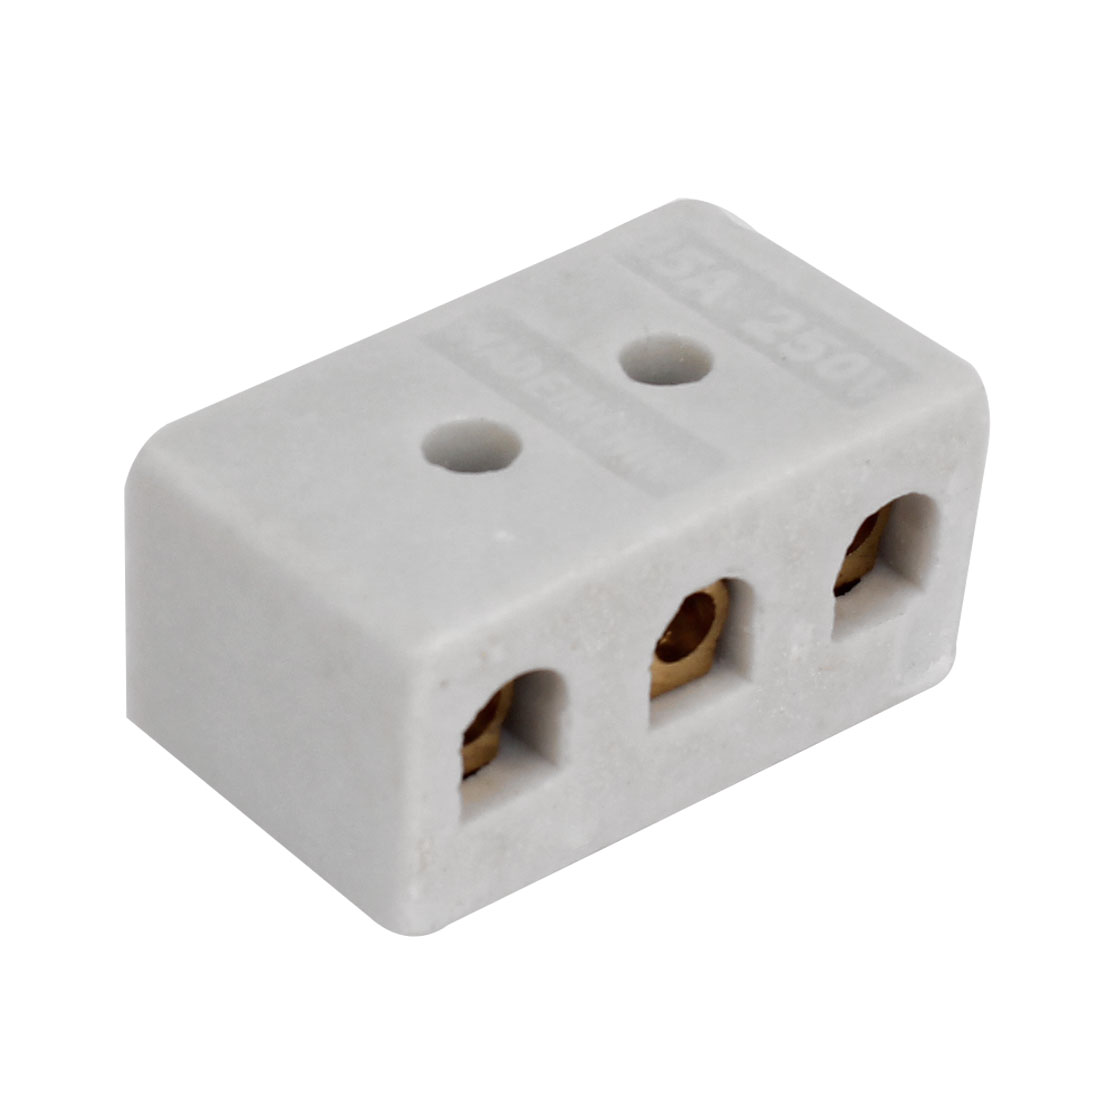 250V 15A 3W8H 3 Way 8 Hole Ceramic Connector Porcelain Terminal Block White